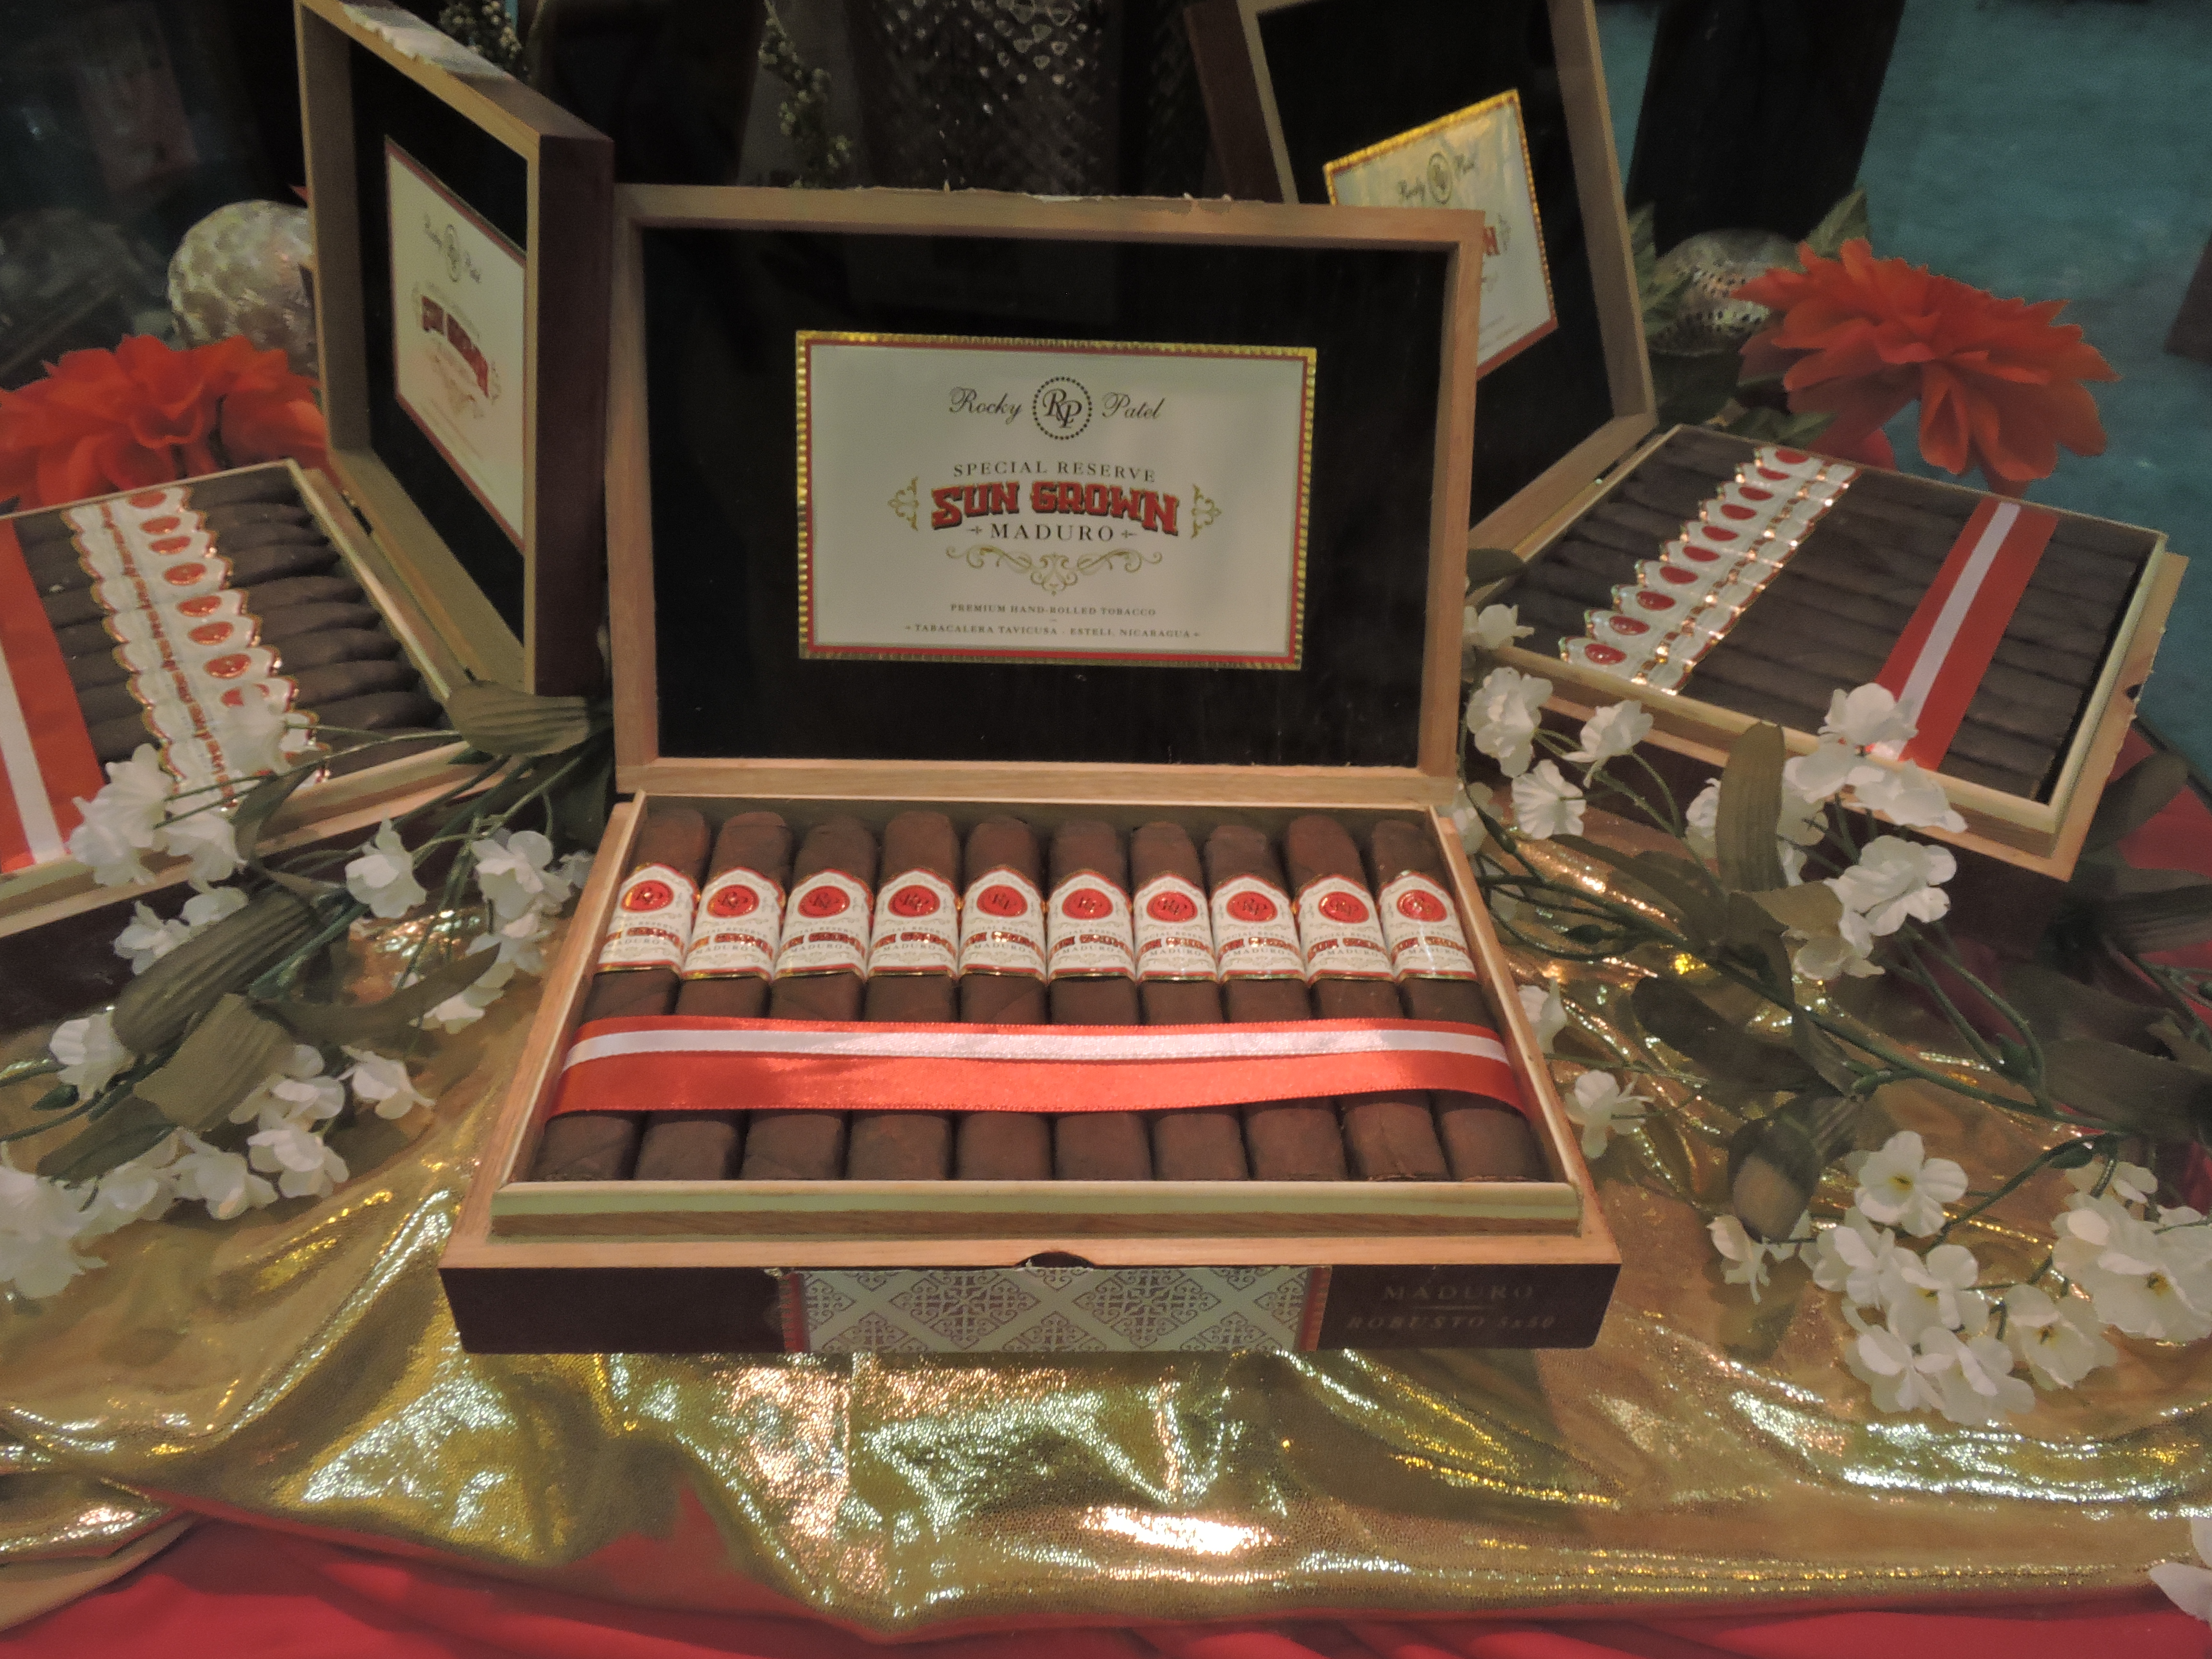 Rocky_Patel_Special_Reserve_Sun_Grown_Maduro_Robusto_Box